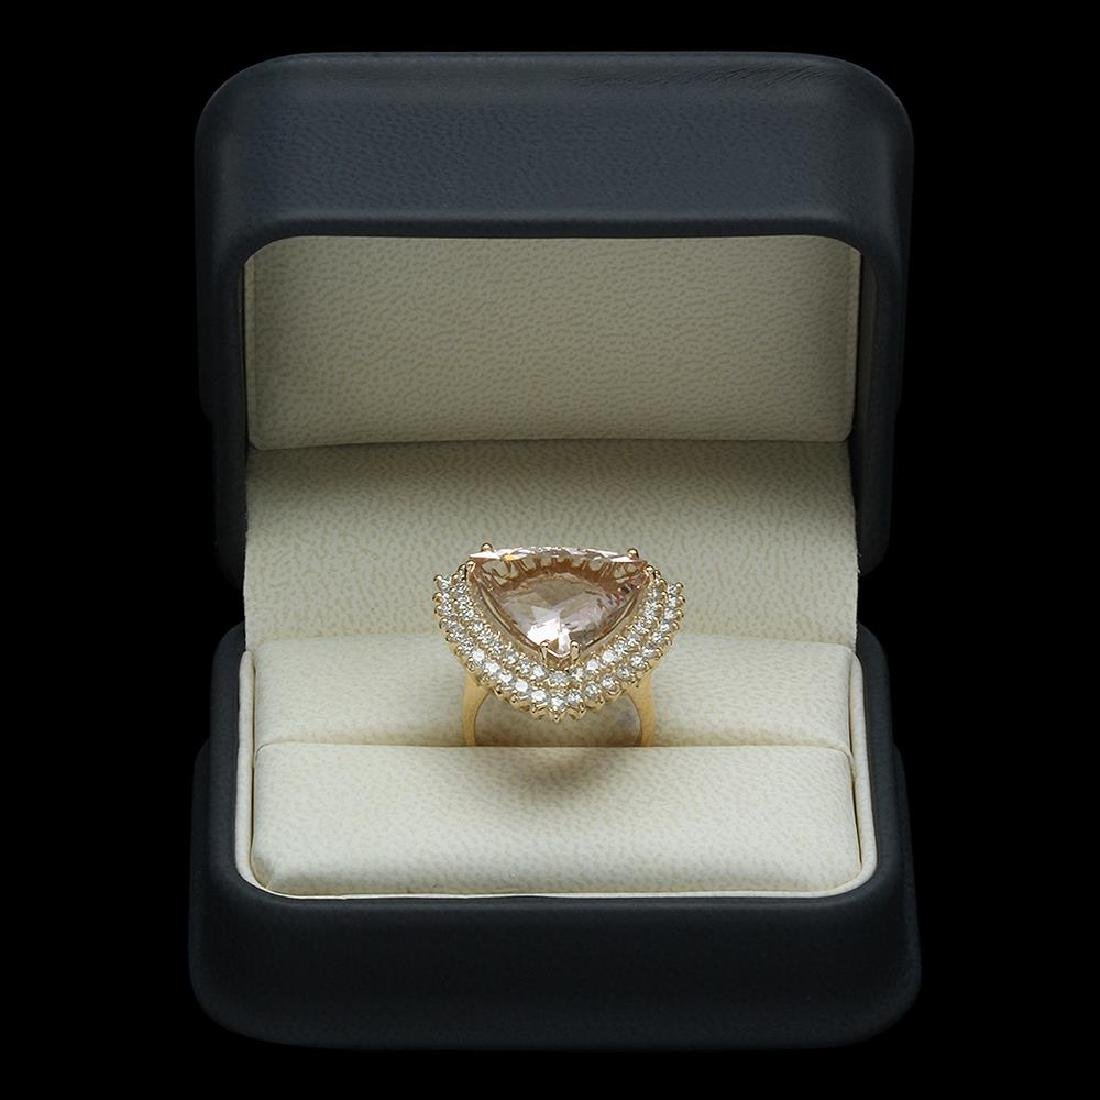 14K Gold 13.58ct Morganite 2.21ct Diamond Ring - 4